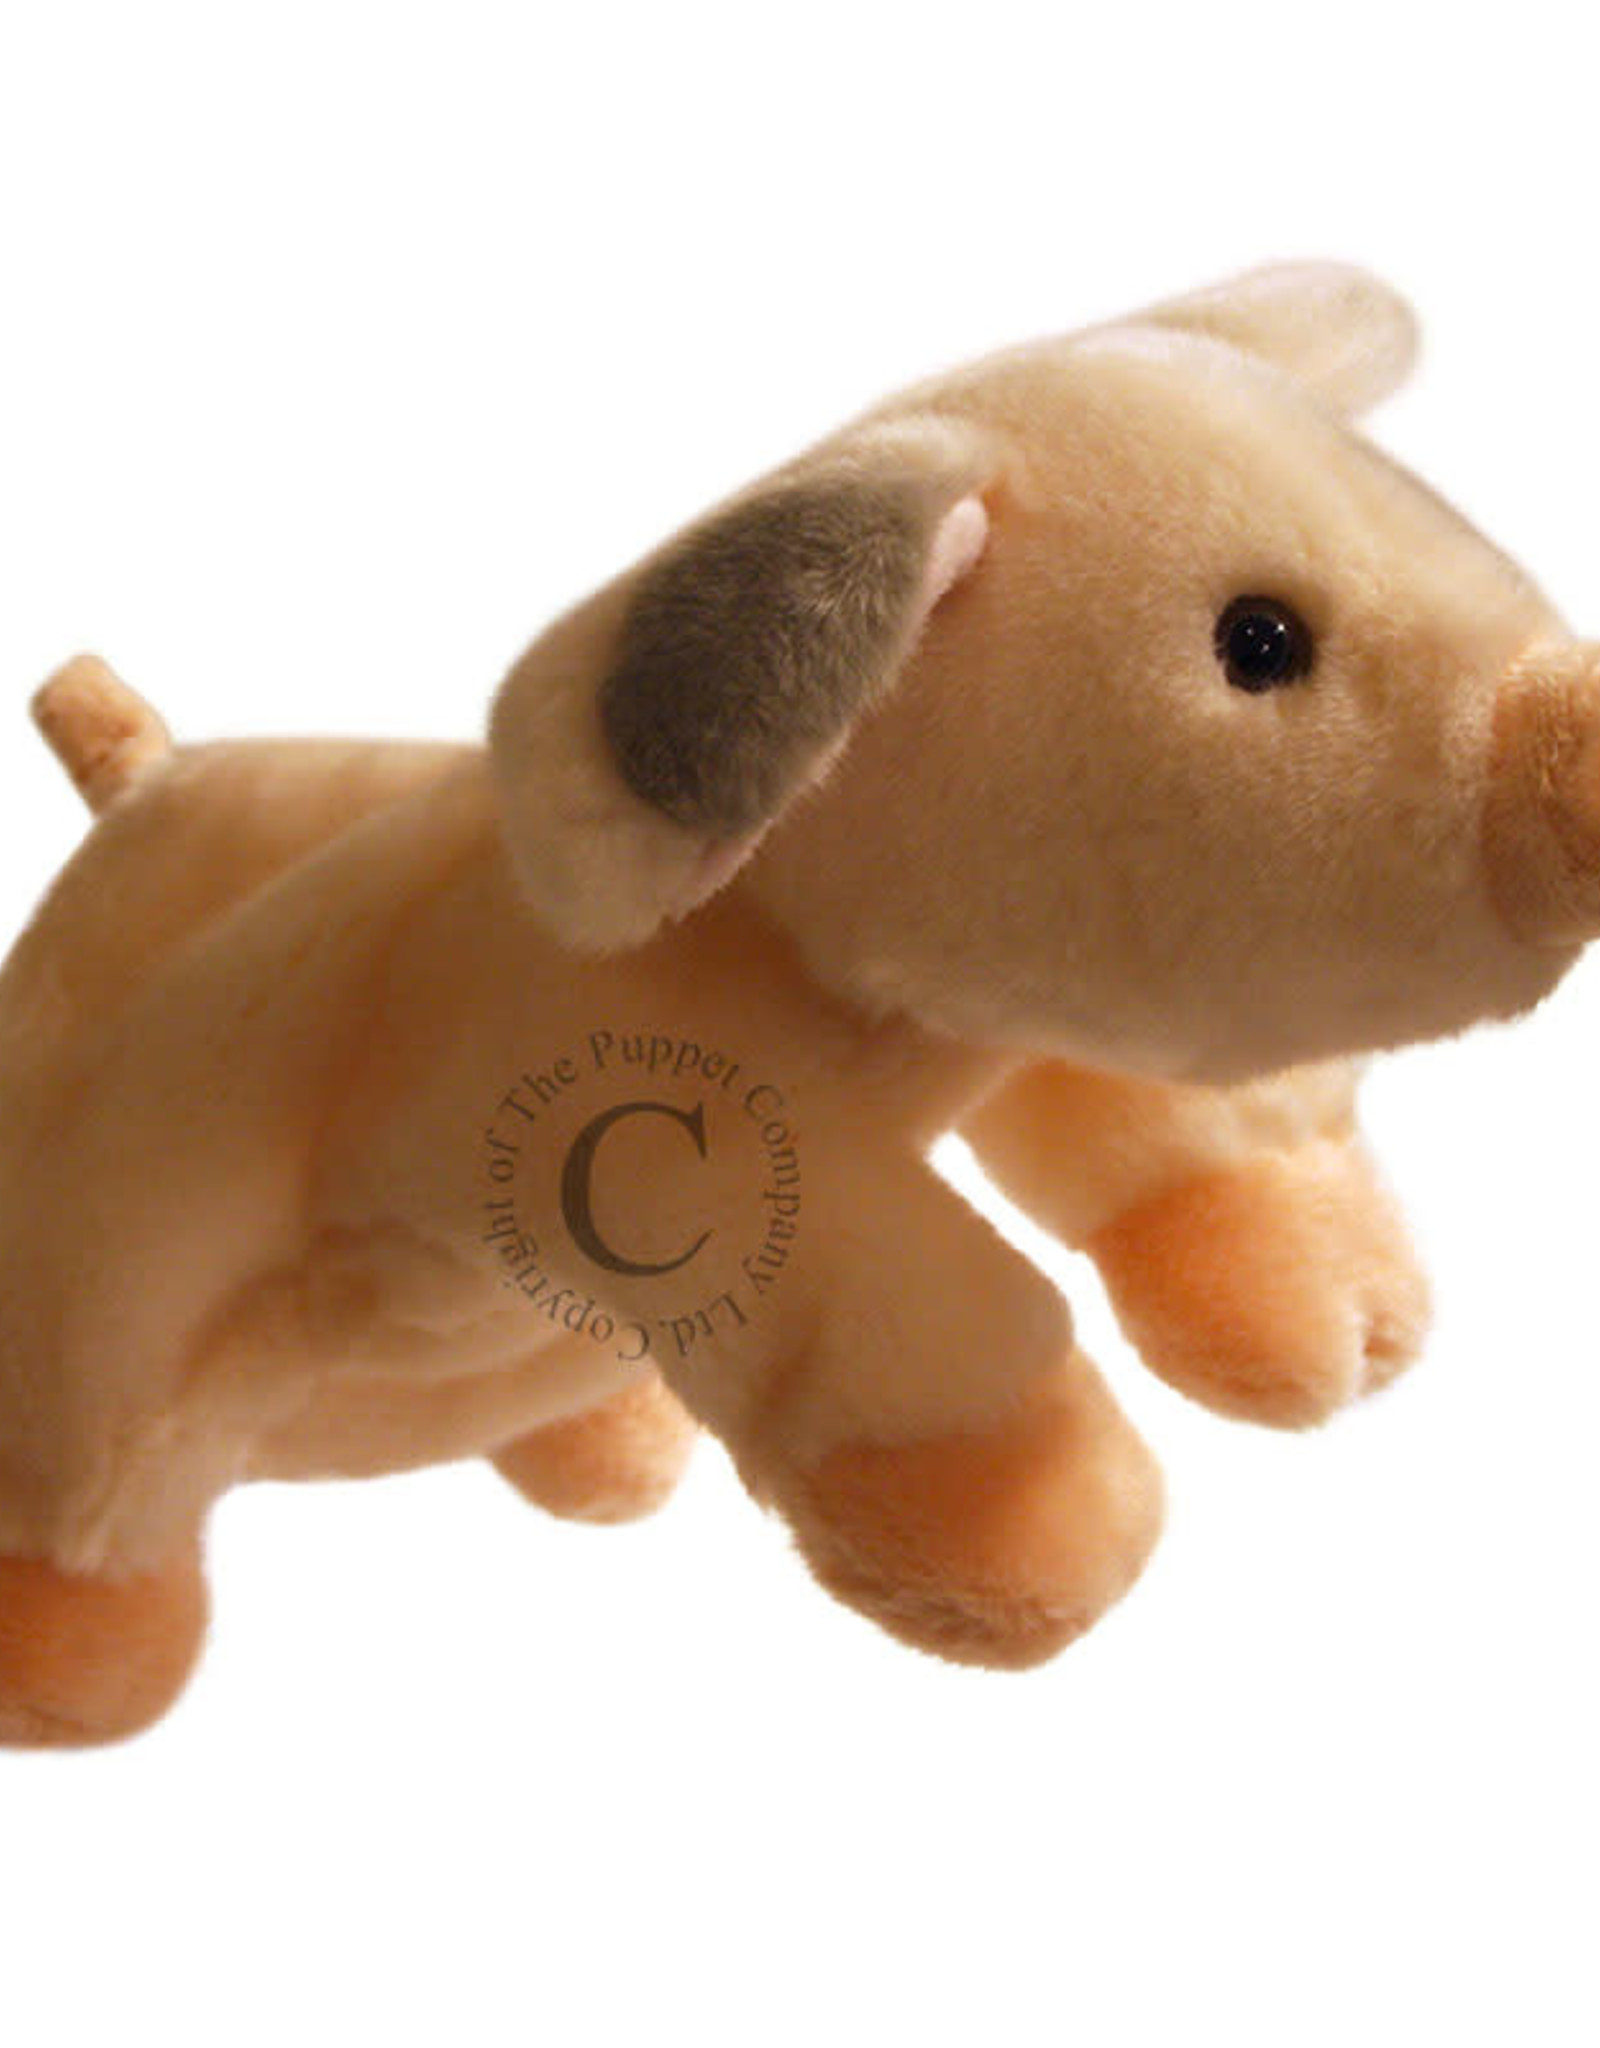 The Puppet Company Puppet Full Body Pig